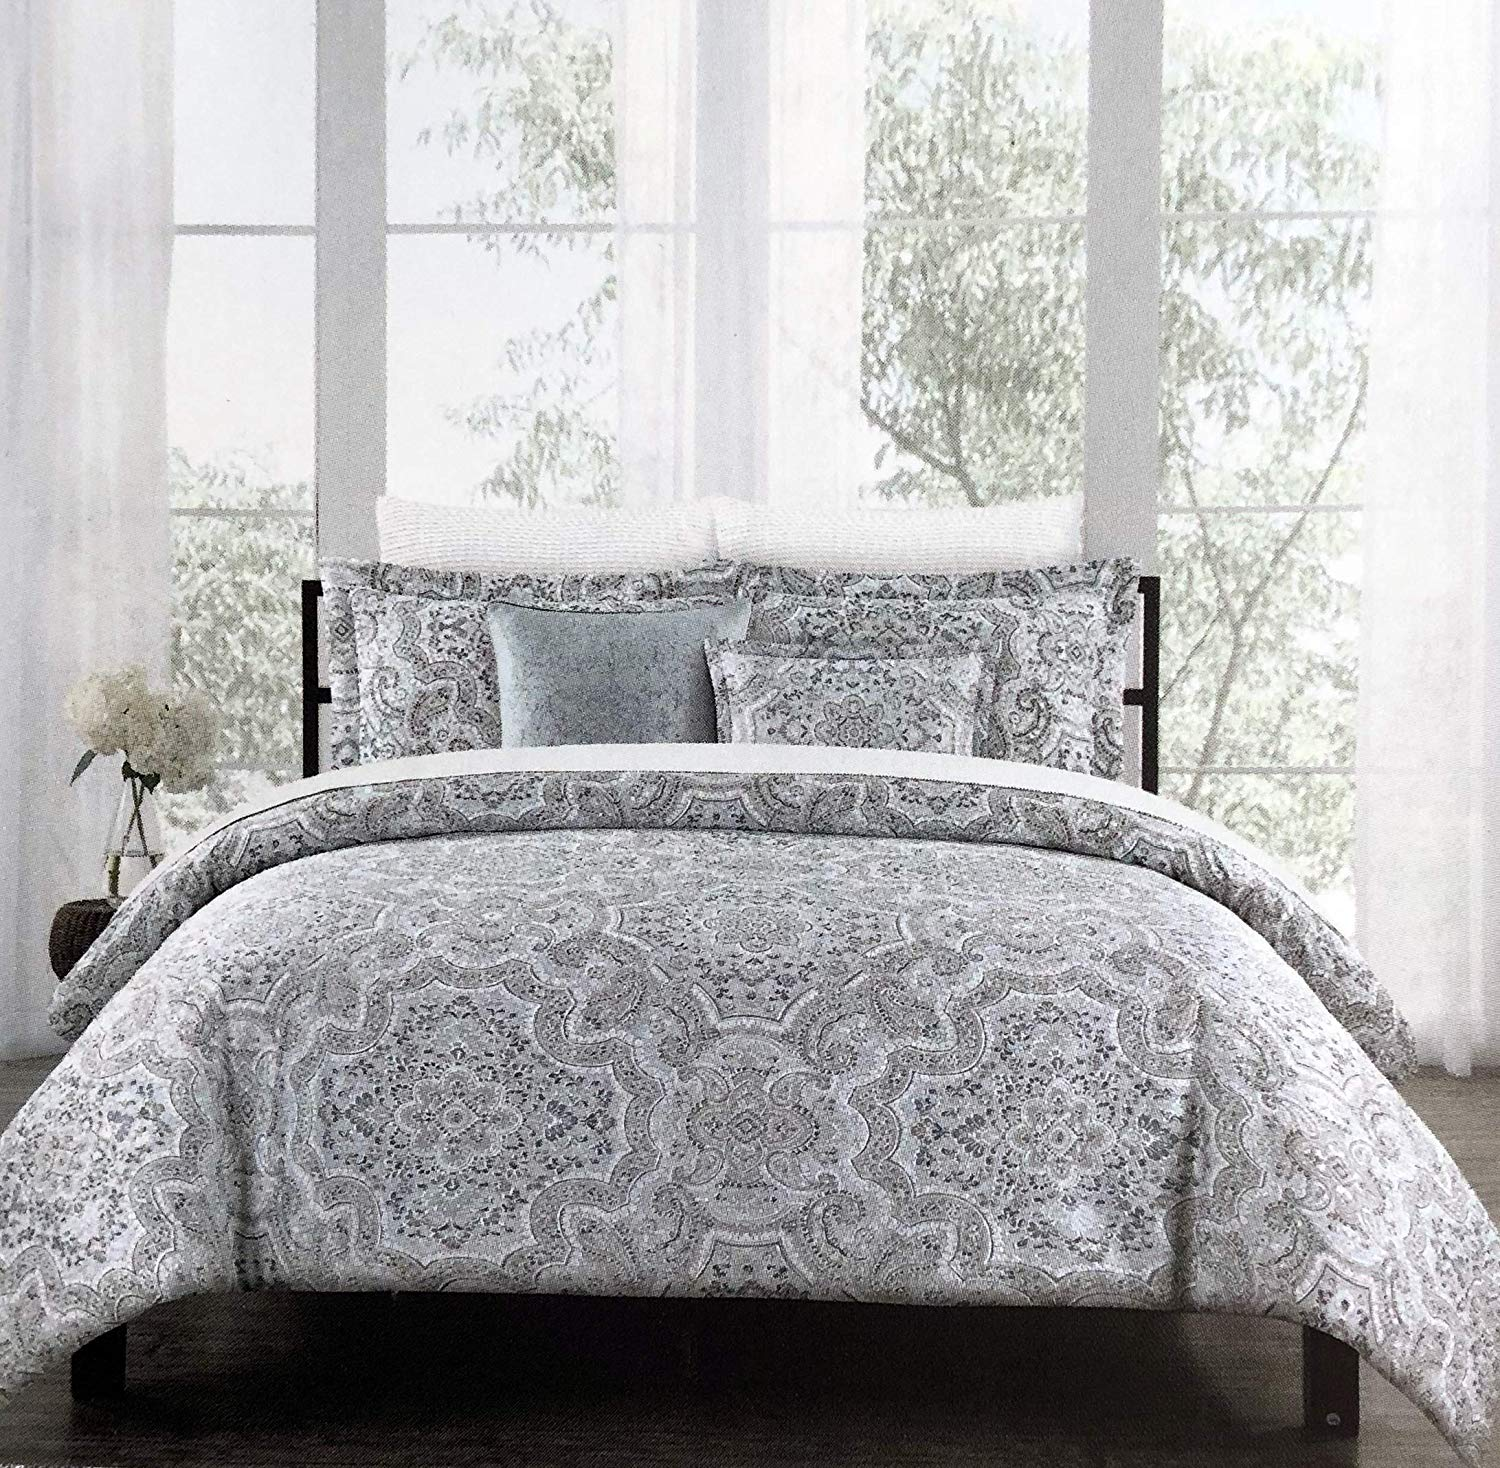 artistic accents bedding piece full queen size duvet tablecloth comforter cover set intricate geometric medallion pattern shades purple white taupe door cabinet silver and table